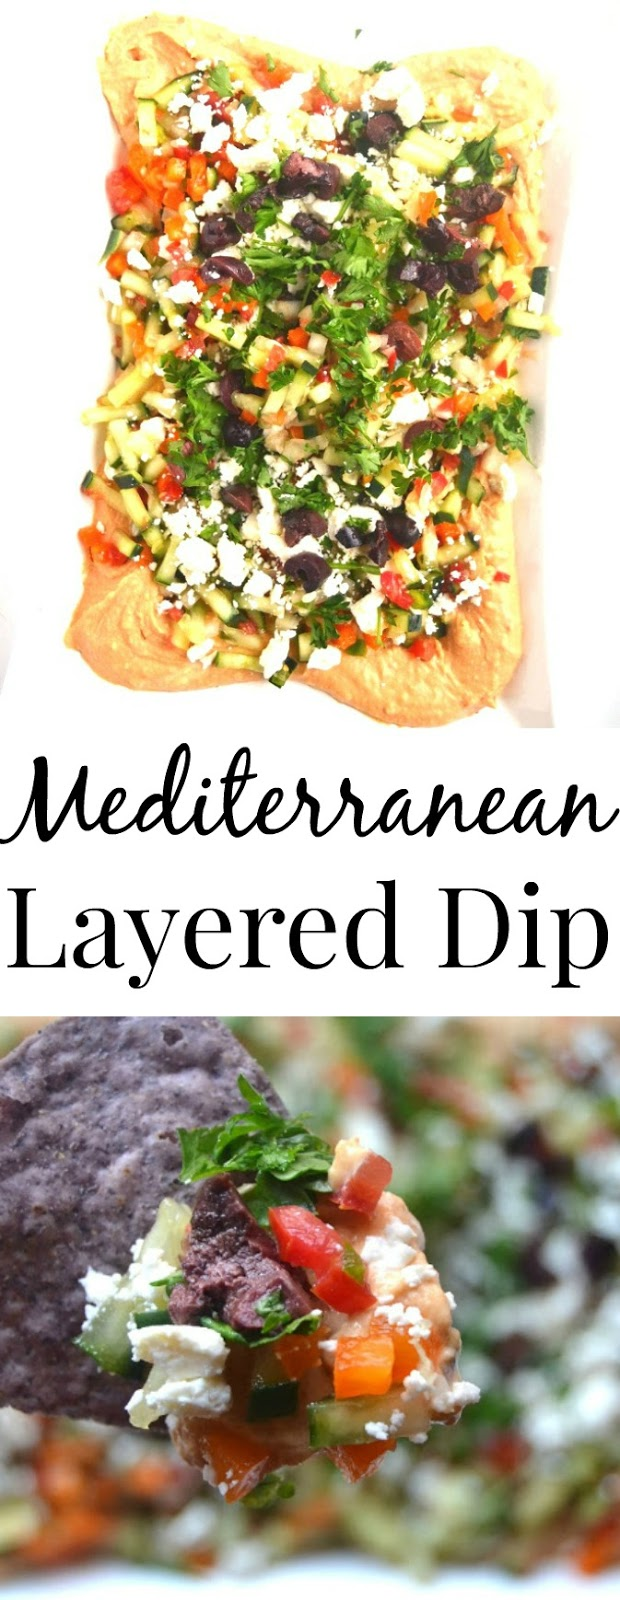 This Mediterranean layered dip features hummus, feta, olives and is loaded with diced vegetables. A quick and flavorful appetizer that no one will know only took you 10 minutes to make! www.nutritionistreviews.com